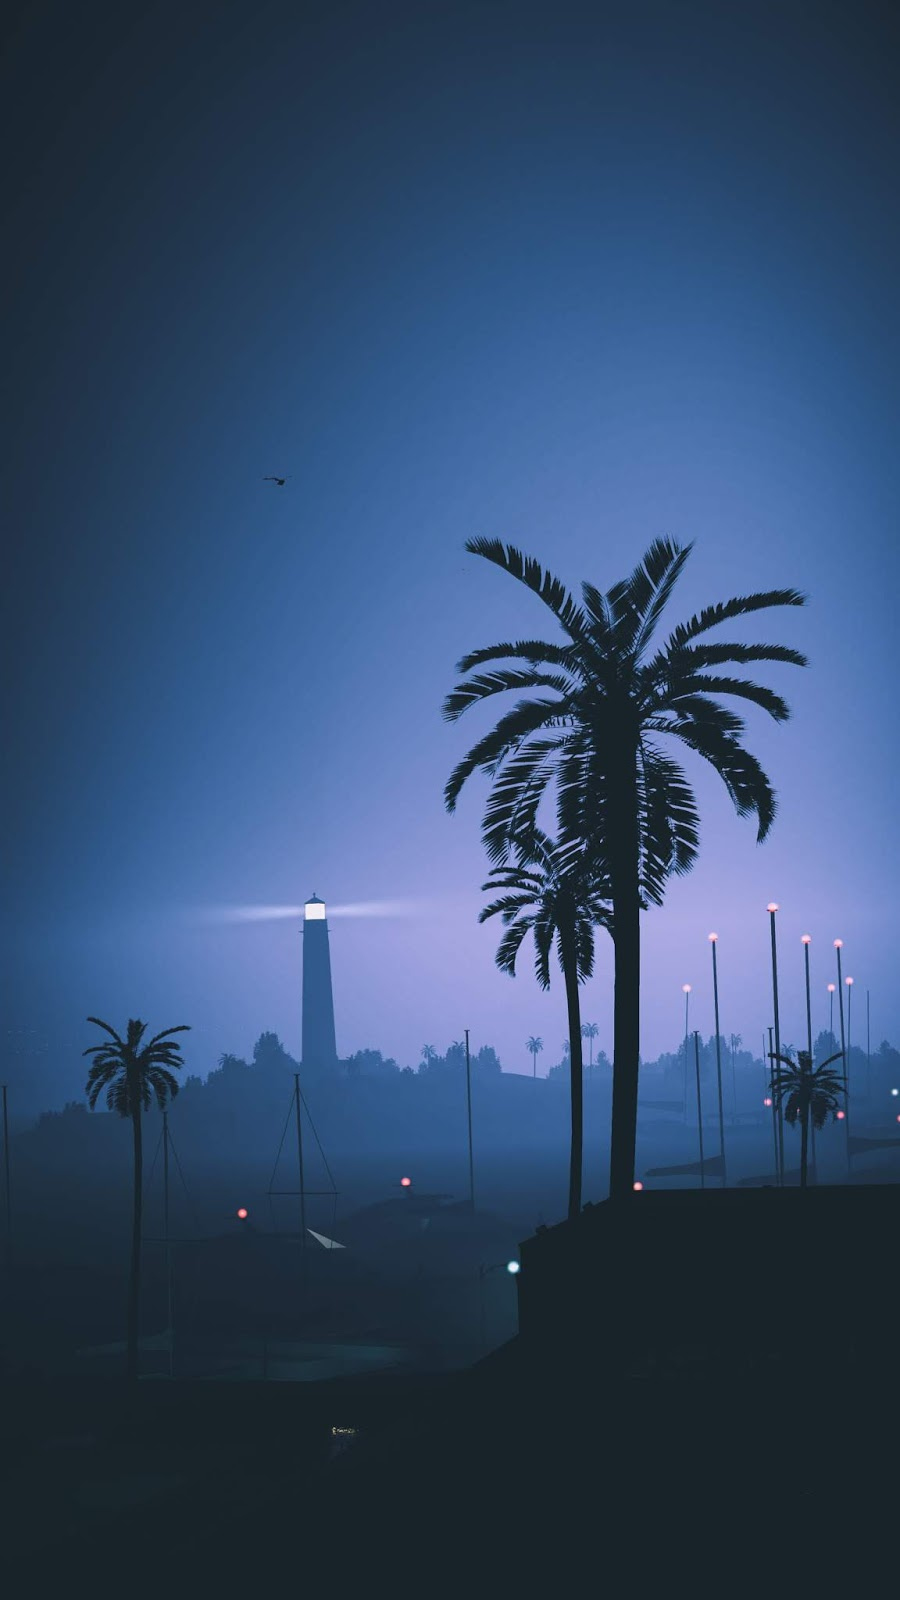 Aesthetic palms night city lighthouse vertical wallpaper 1080 x 1920 pixels